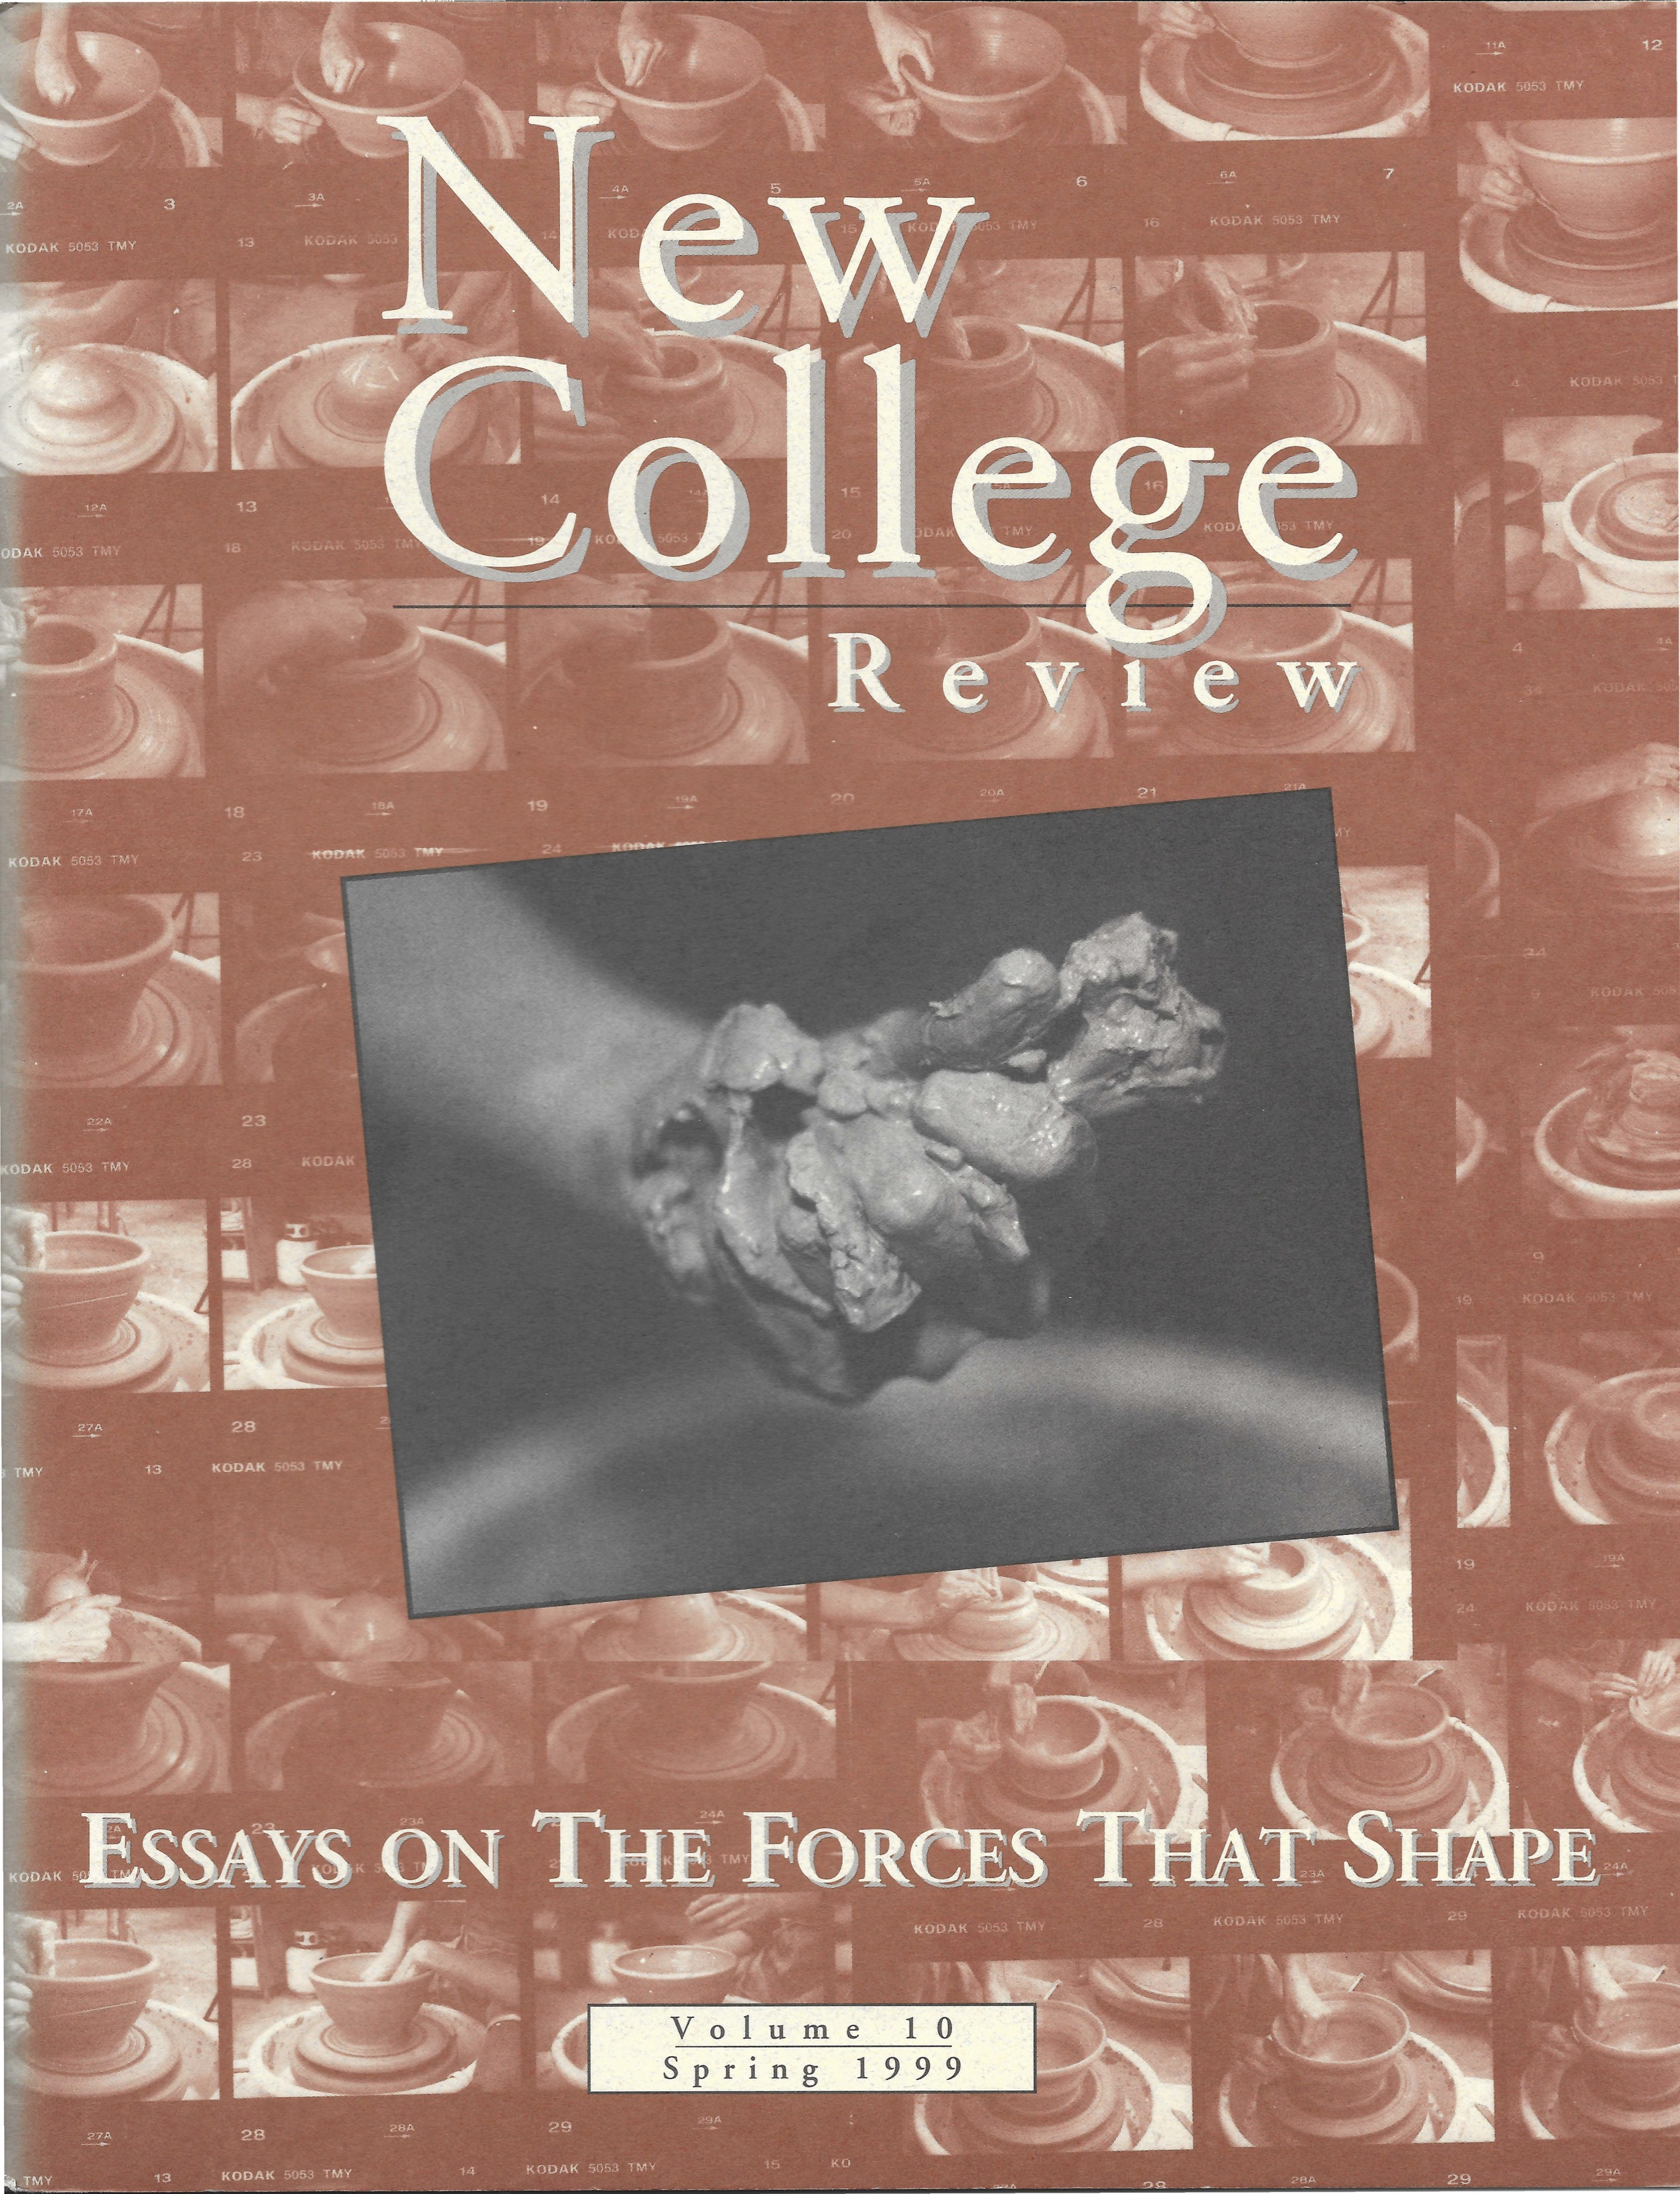 New College Review Volume 10 cover from Spring 1999 titled